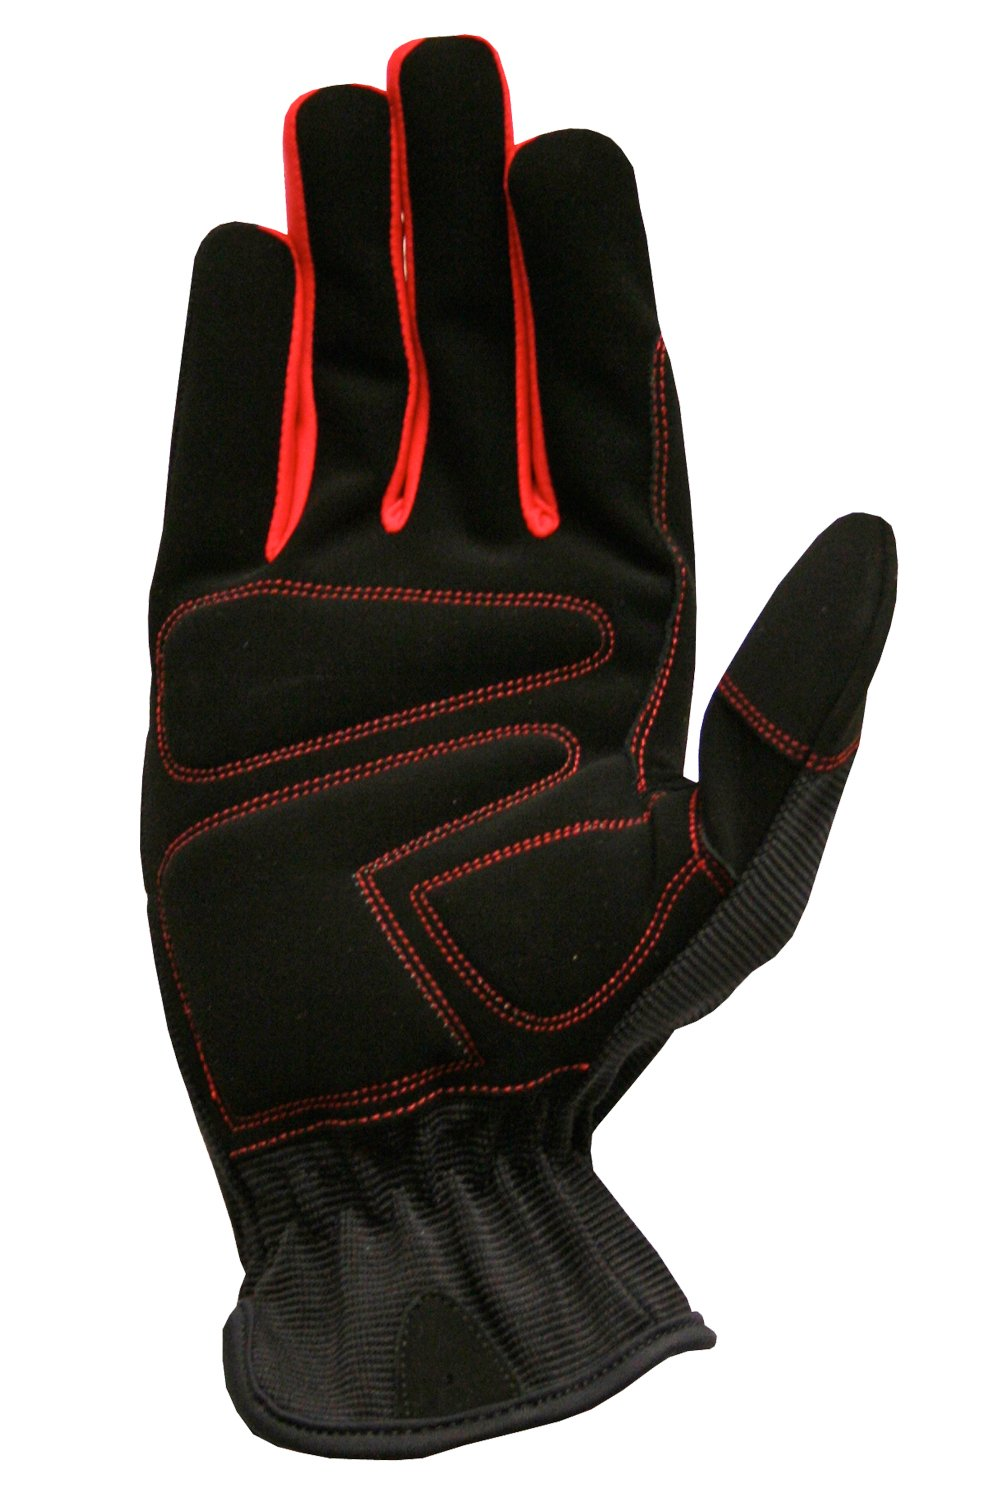 Big Time Products 22003-23 Grease Monkey Large Light Duty Utility Work Glove